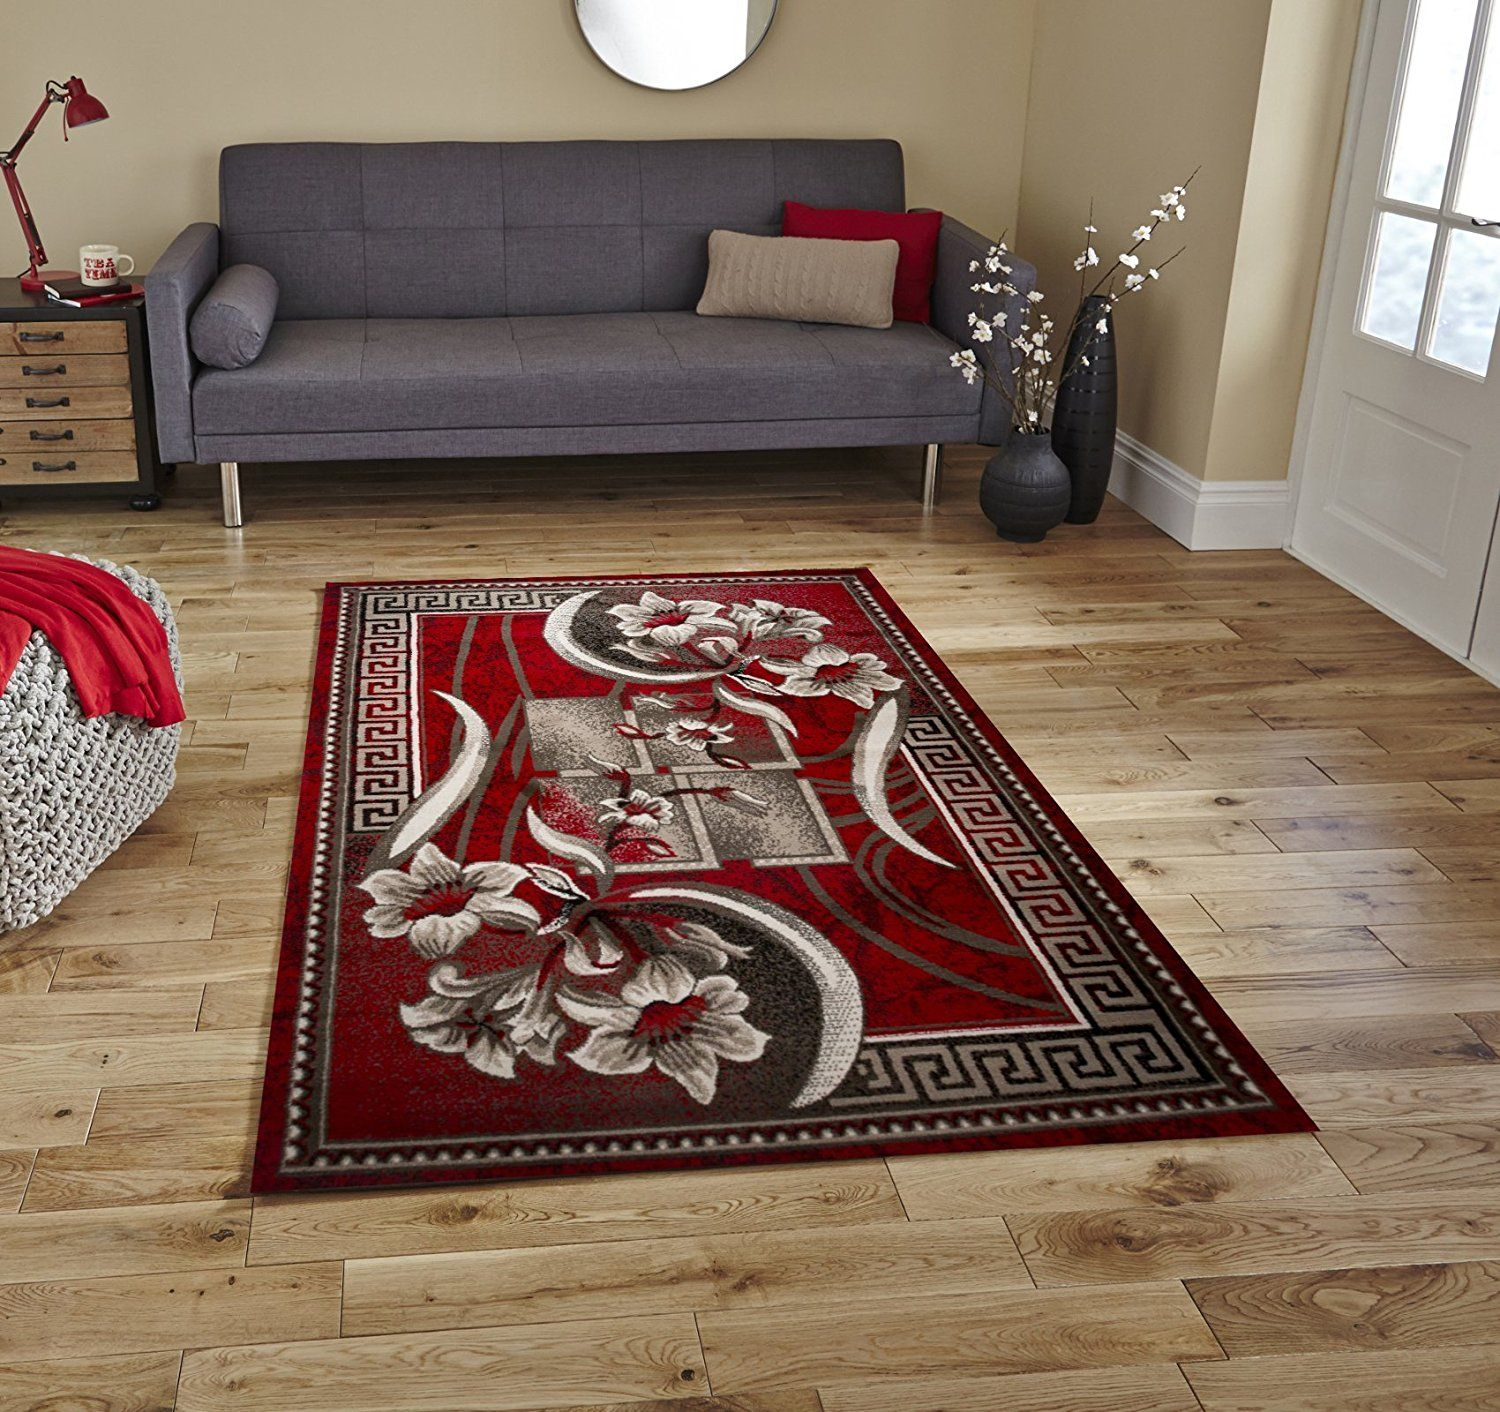 Msrugs Area Carpet Rug Classy Traditional Designs Perfect For